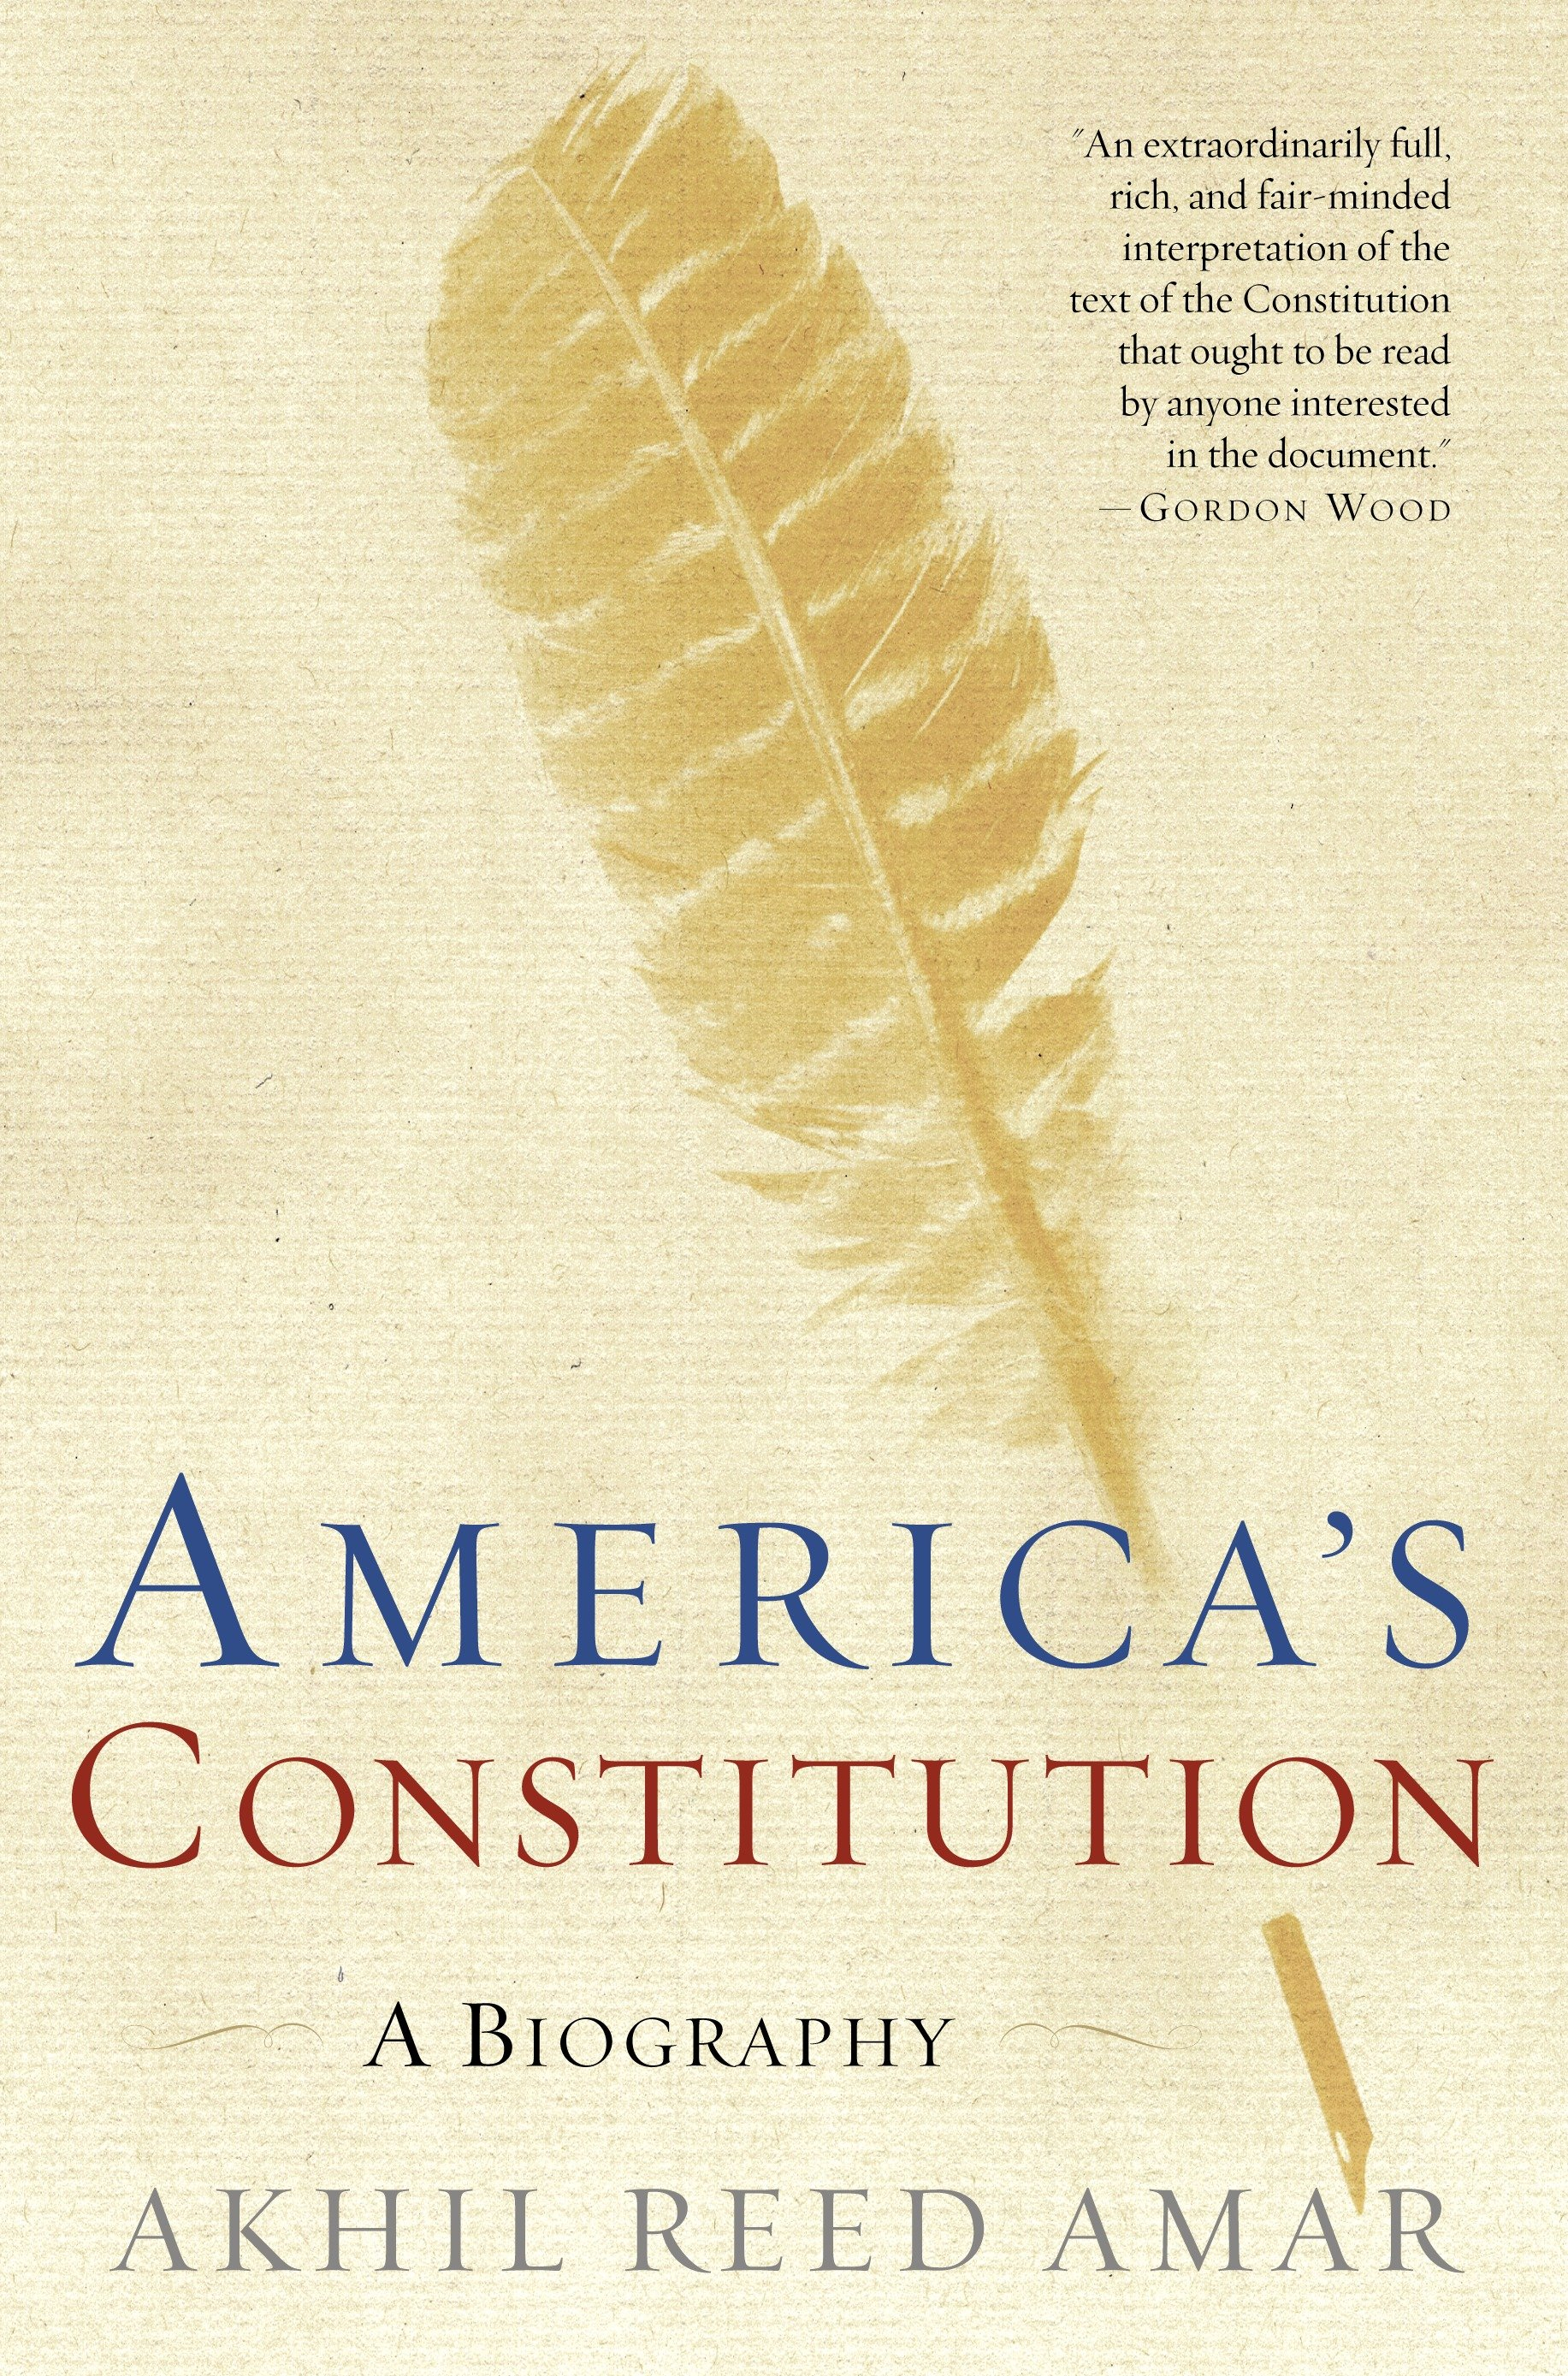 America's Constitution A Biography